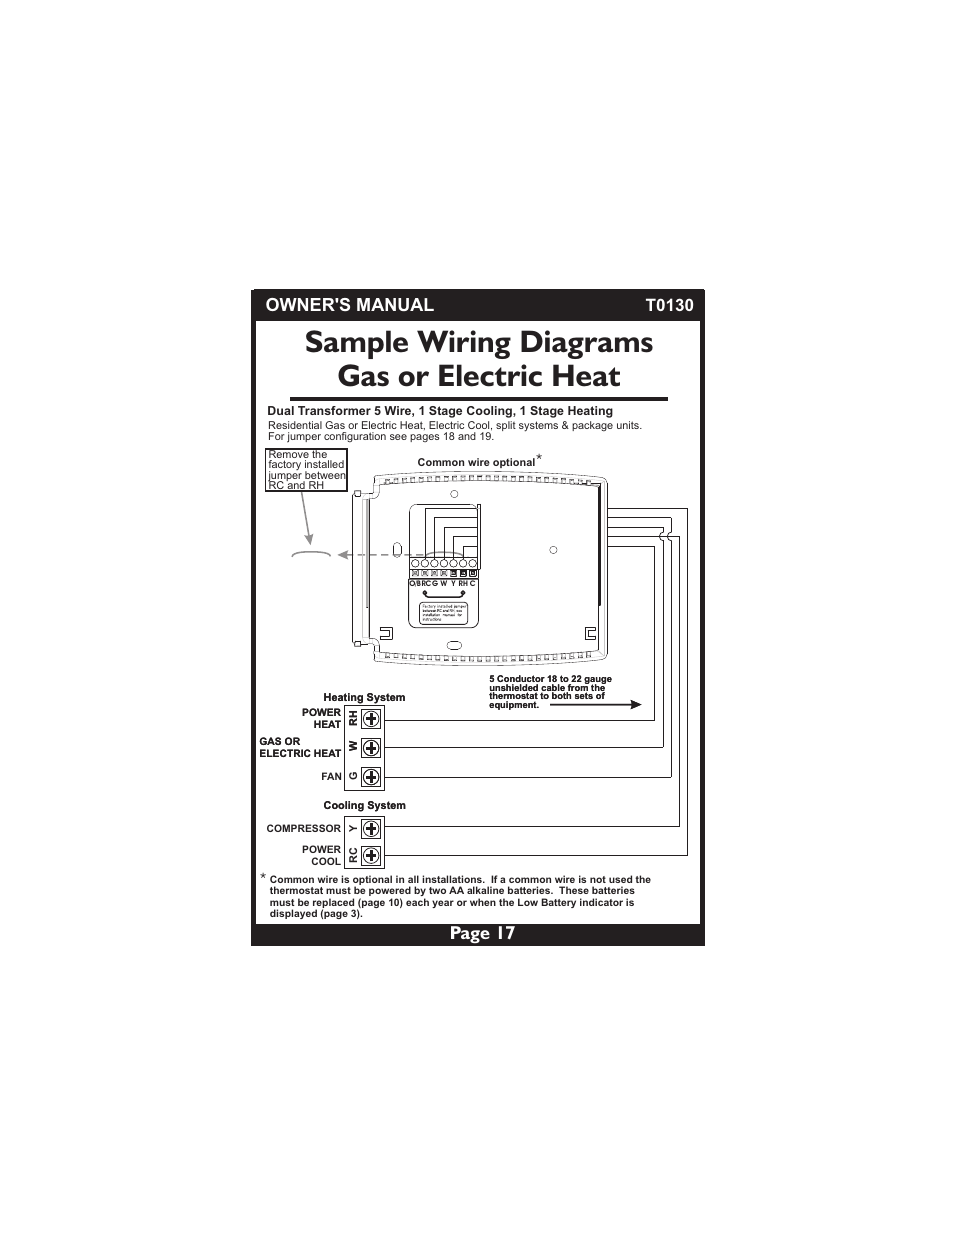 Sample Wiring Diagrams Gas Or Electric Heat Page 17 Owners Manual Thermostat Two Transformers Venstar T0130 User 25